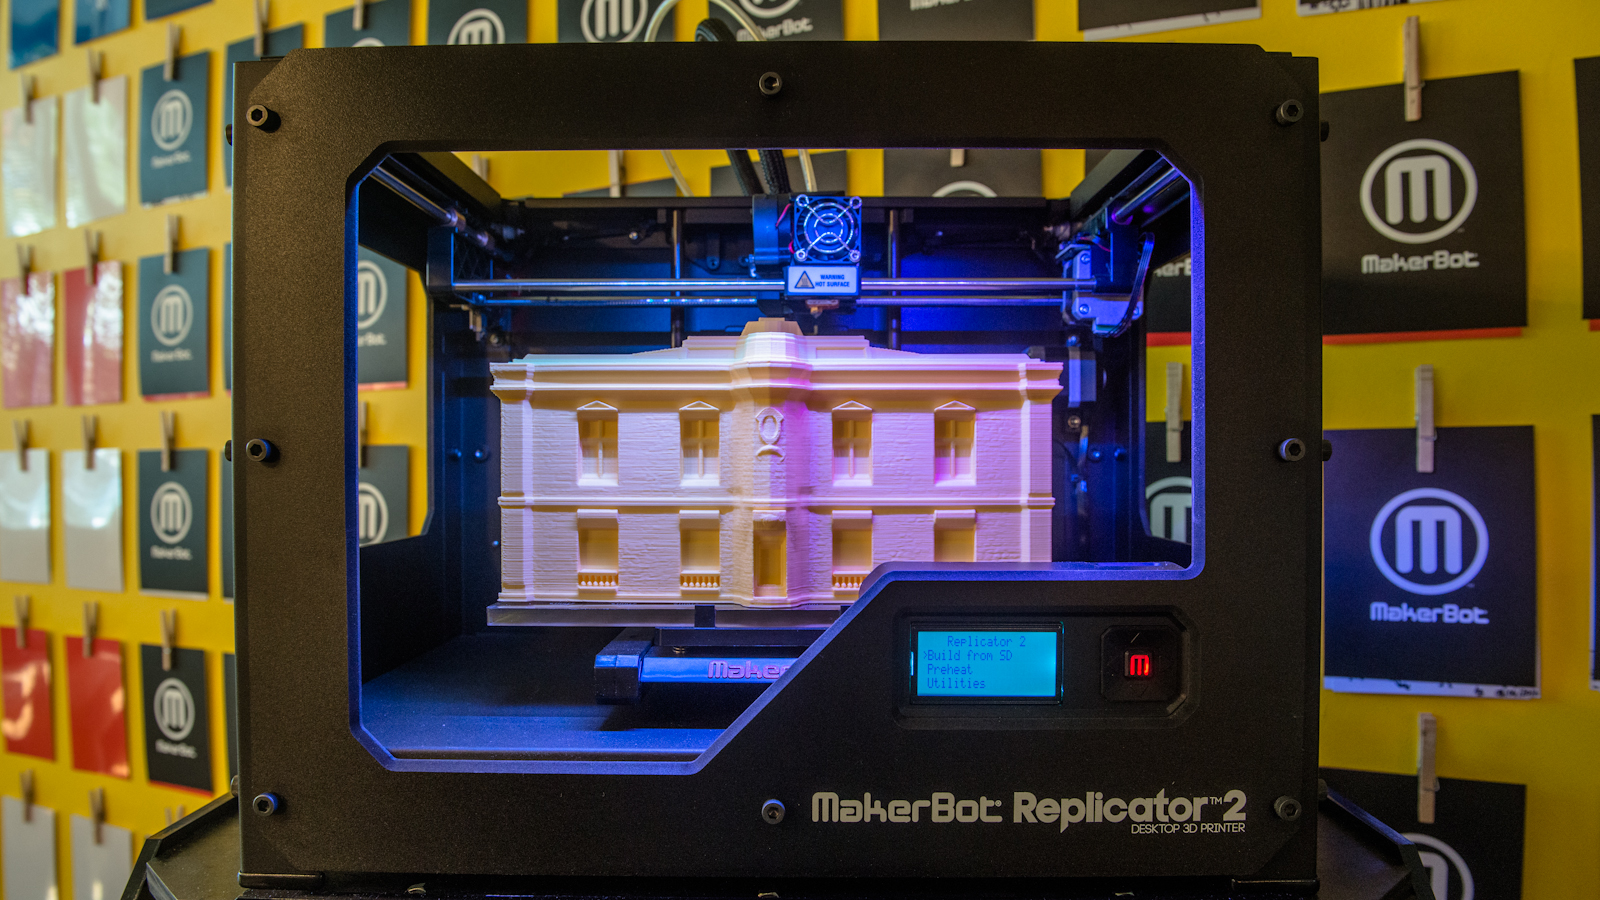 Click here to read The MakerBot Replicator 2 Prints A Bigger, More Detailed Chunk of Your Creative Genius